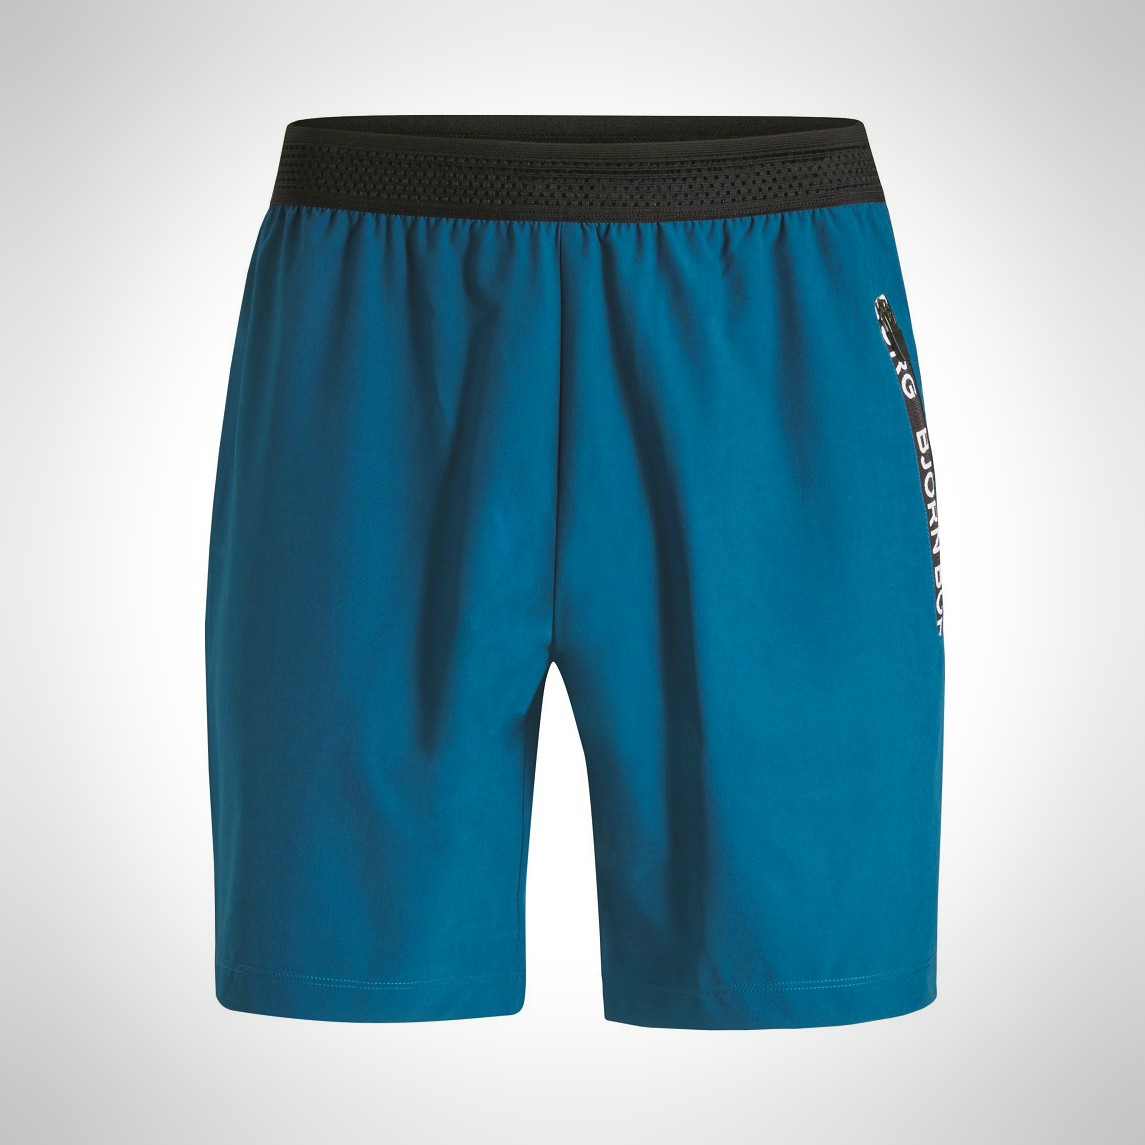 gym-clothes-for-men-workout-gear-shorts-bjorn-borg